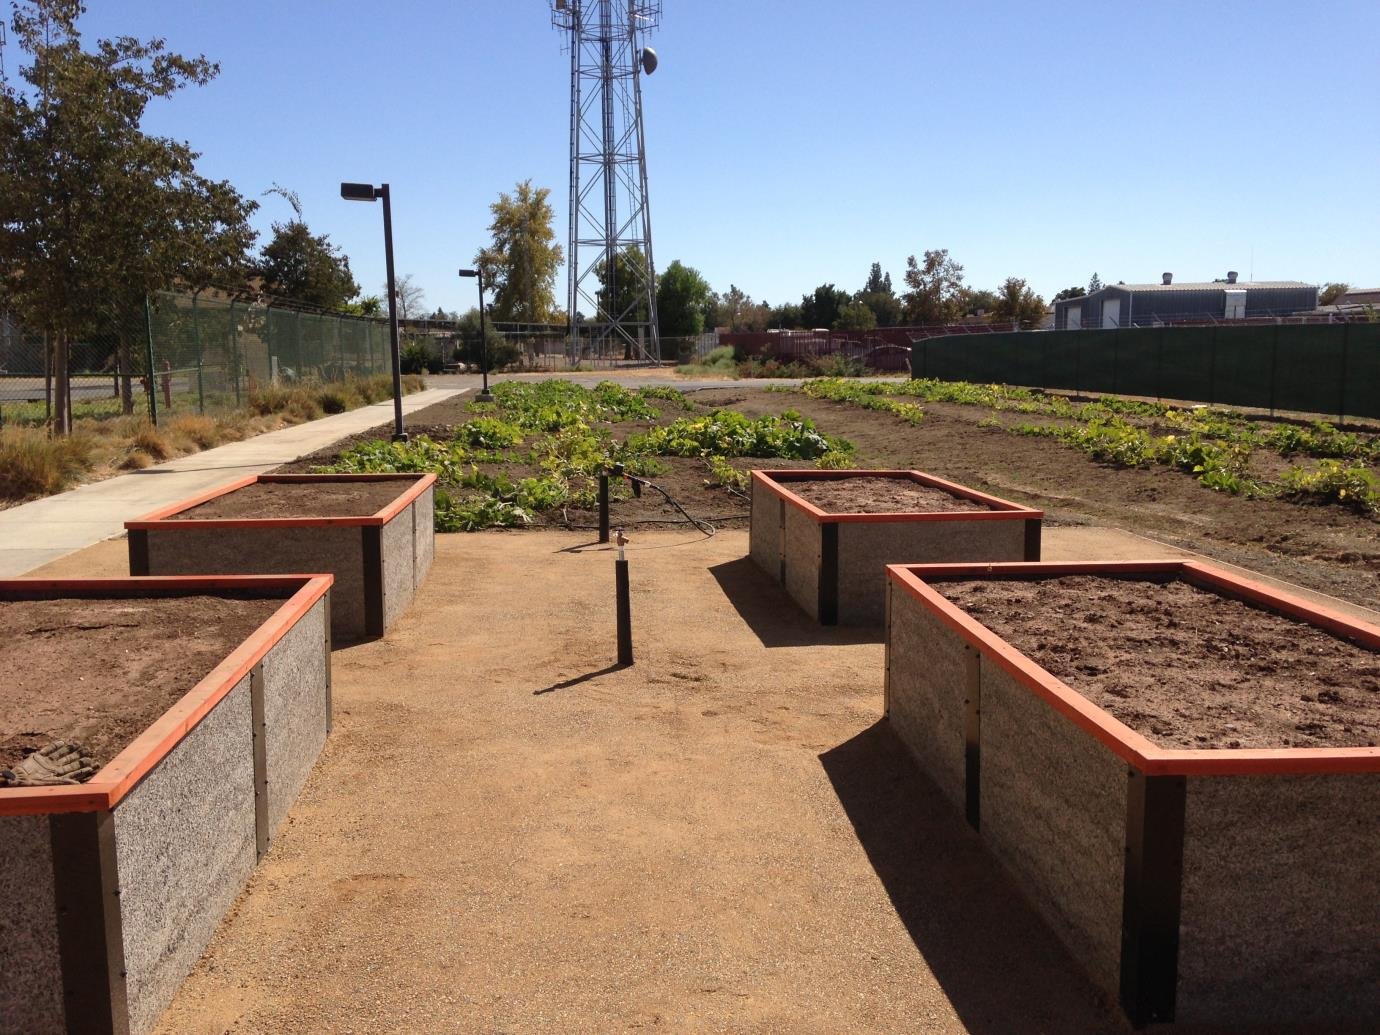 ADA beds and pumpkins